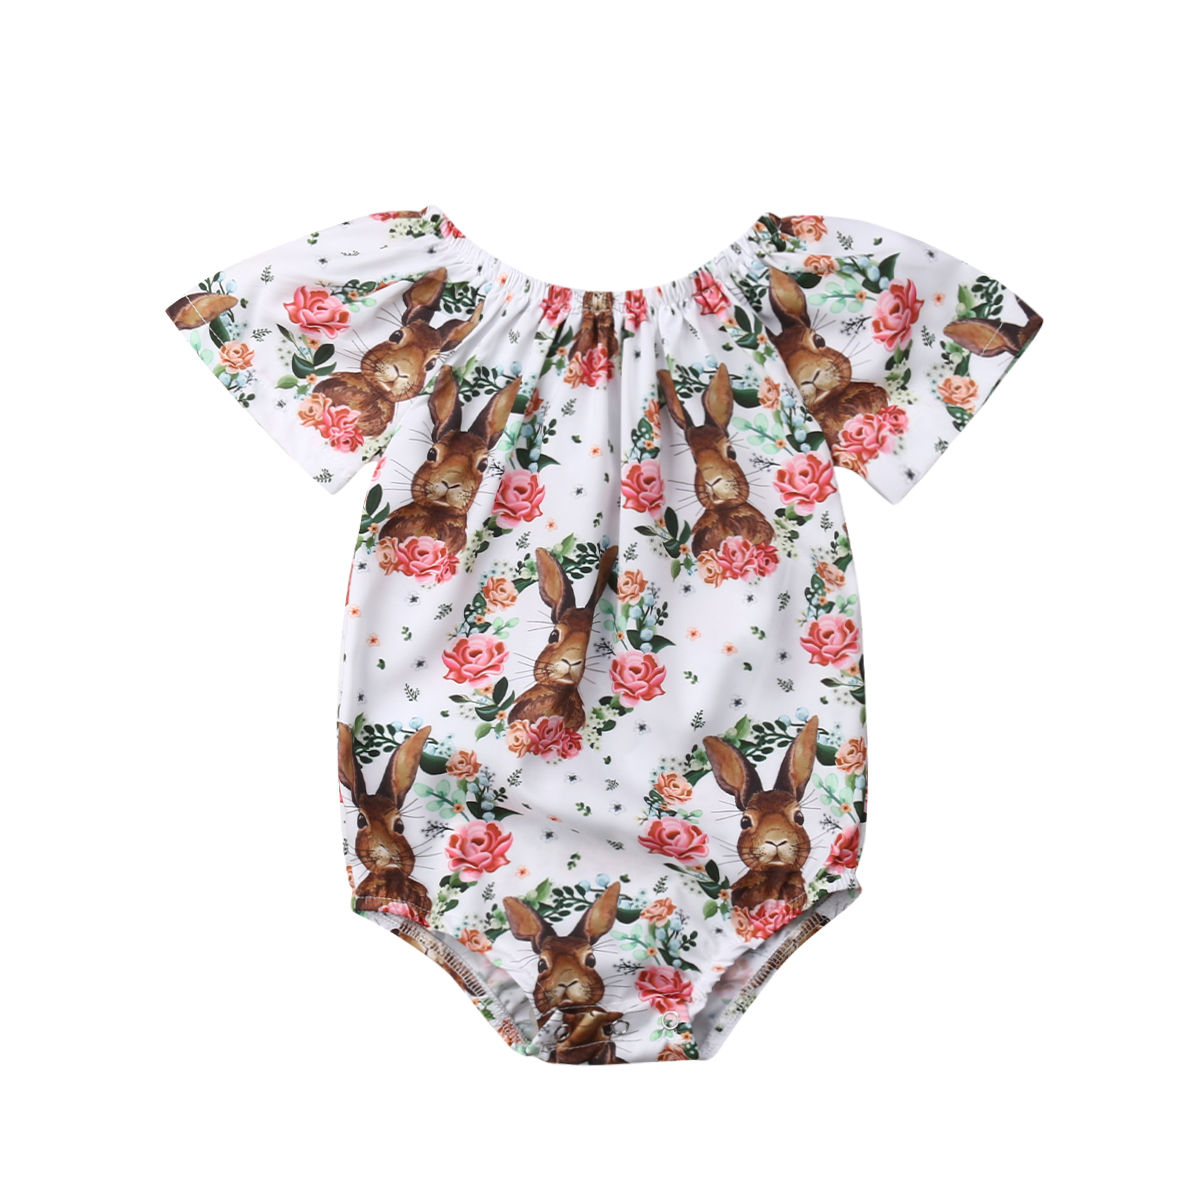 2ec937514da Detail Feedback Questions about 2019 Easter Newborn Romper Baby Girls Bunny  Flowers Romper Jumpsuit Toddler Infant One Piece Outfits Clothes 0 2T on ...